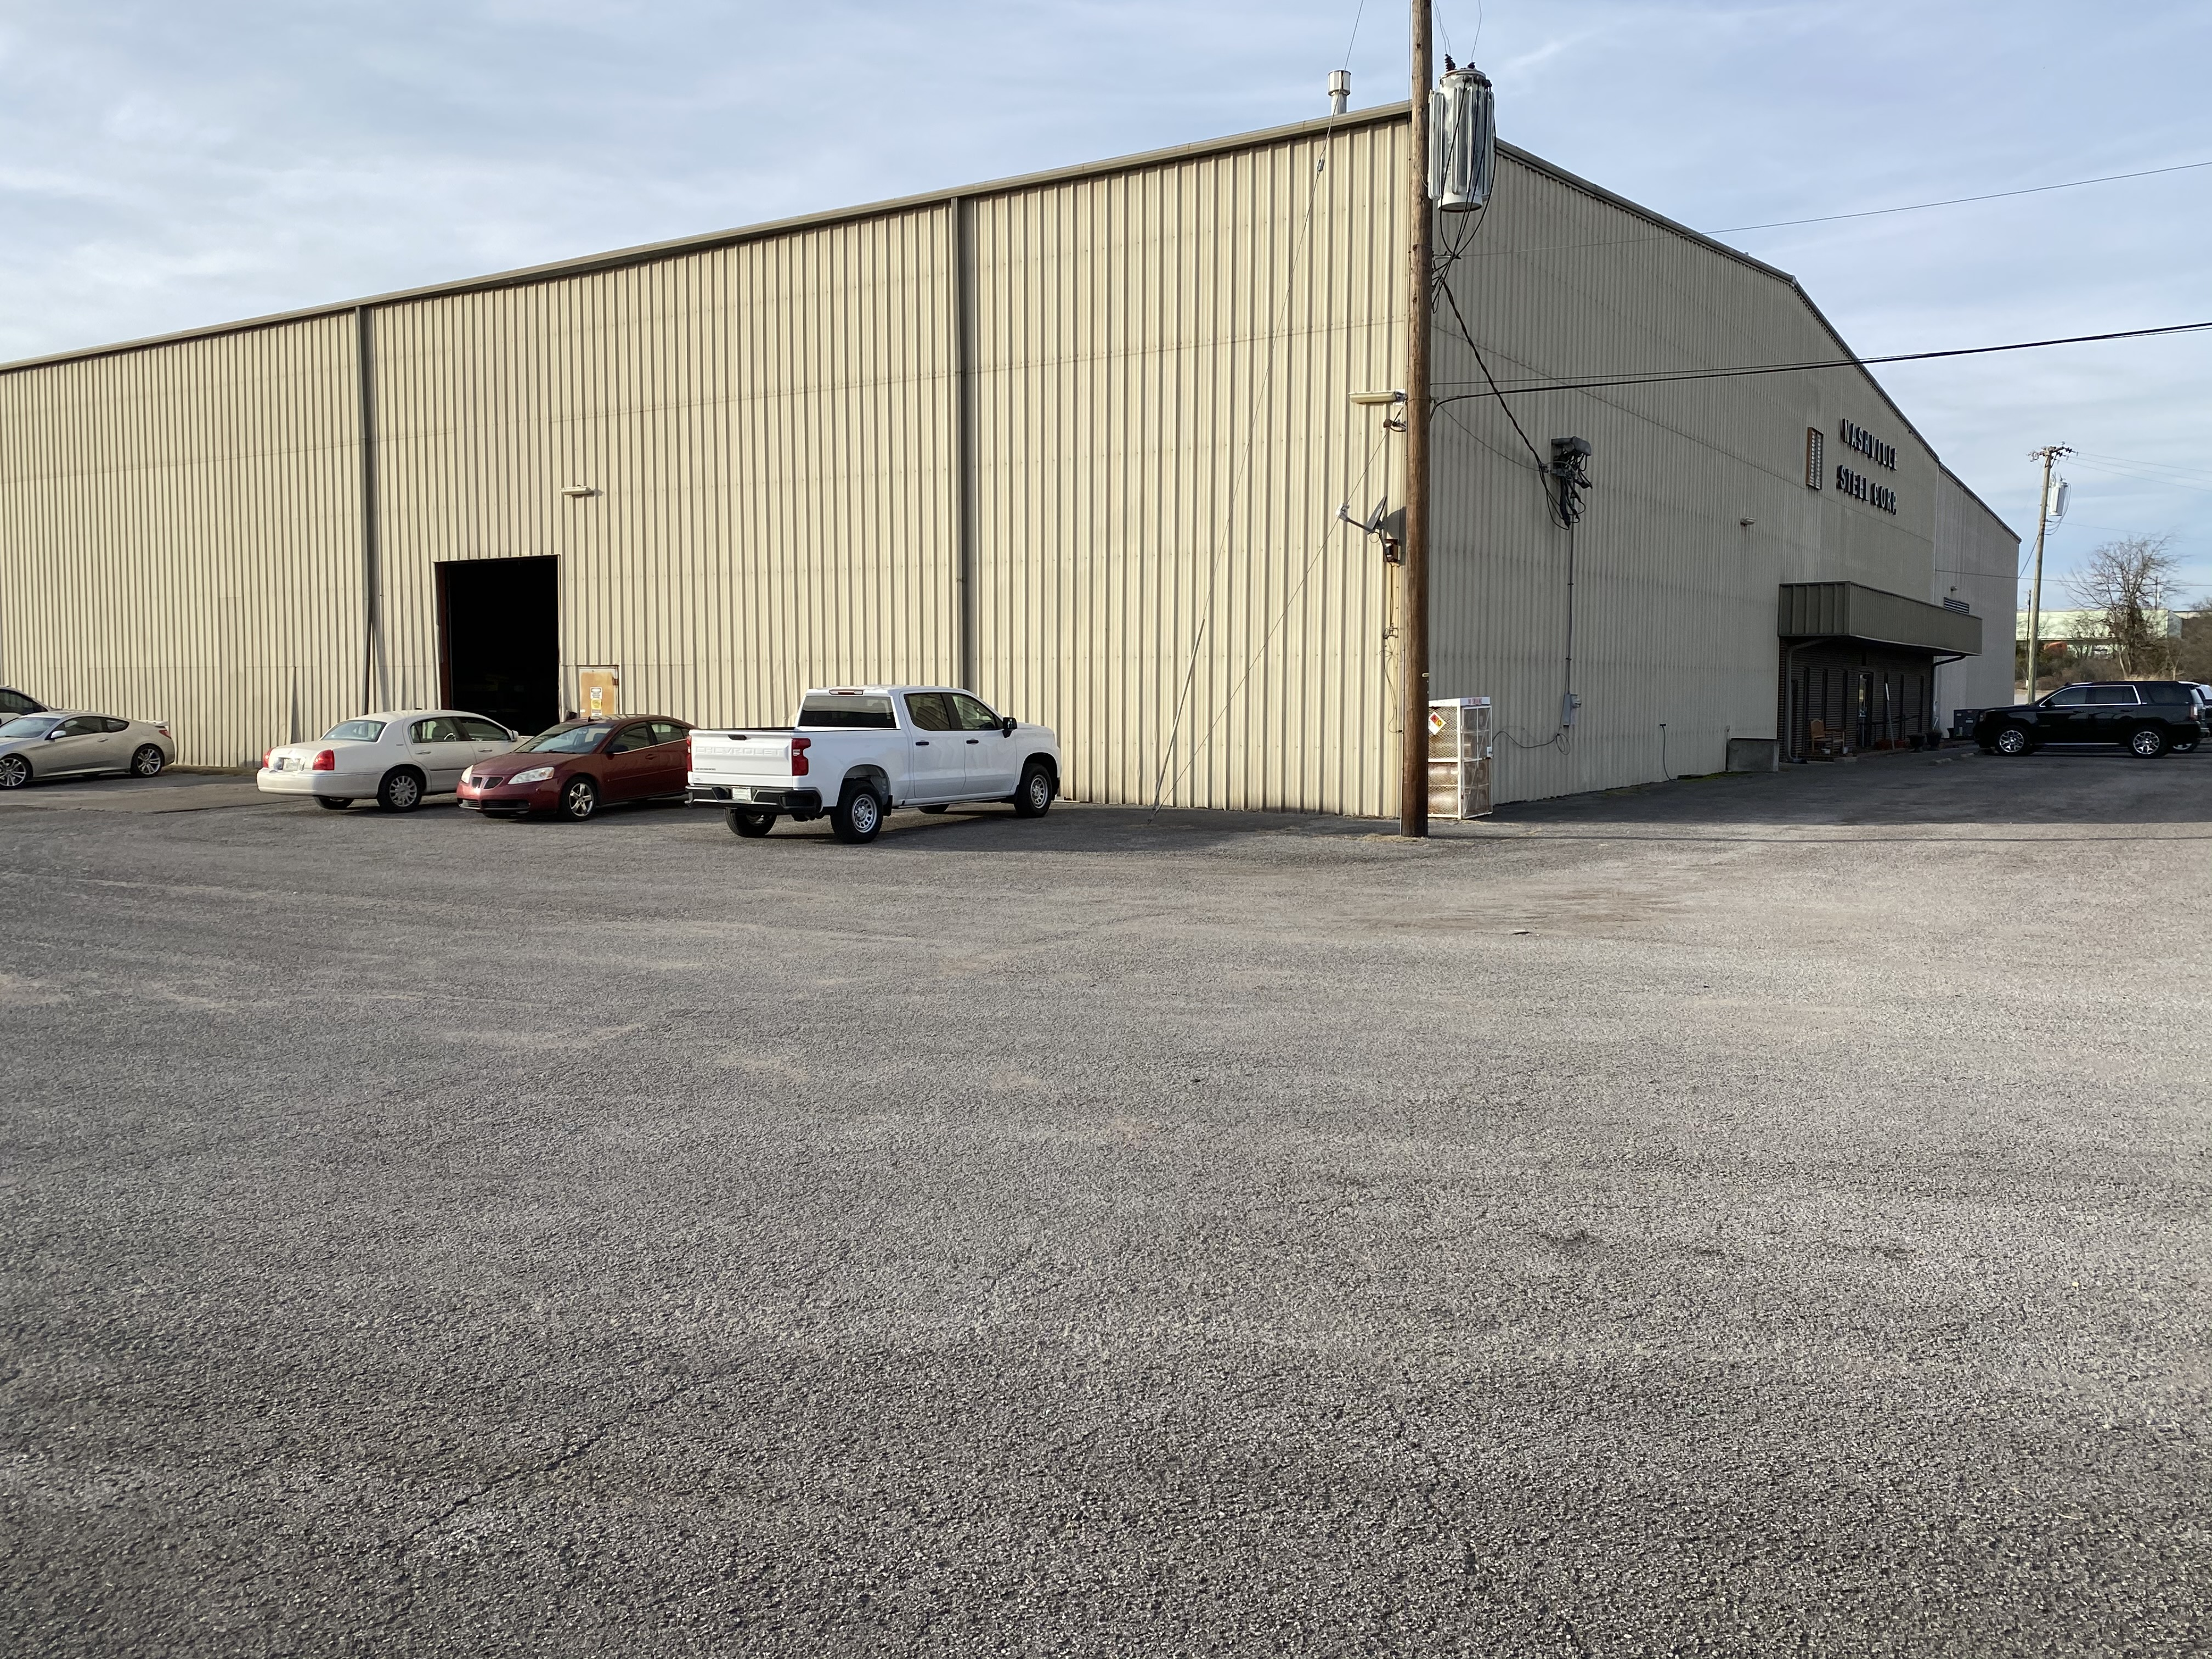 53,000 SQ. FT. Industrial Crane Building,3,000 SQ. FT. - Image 2 of 5